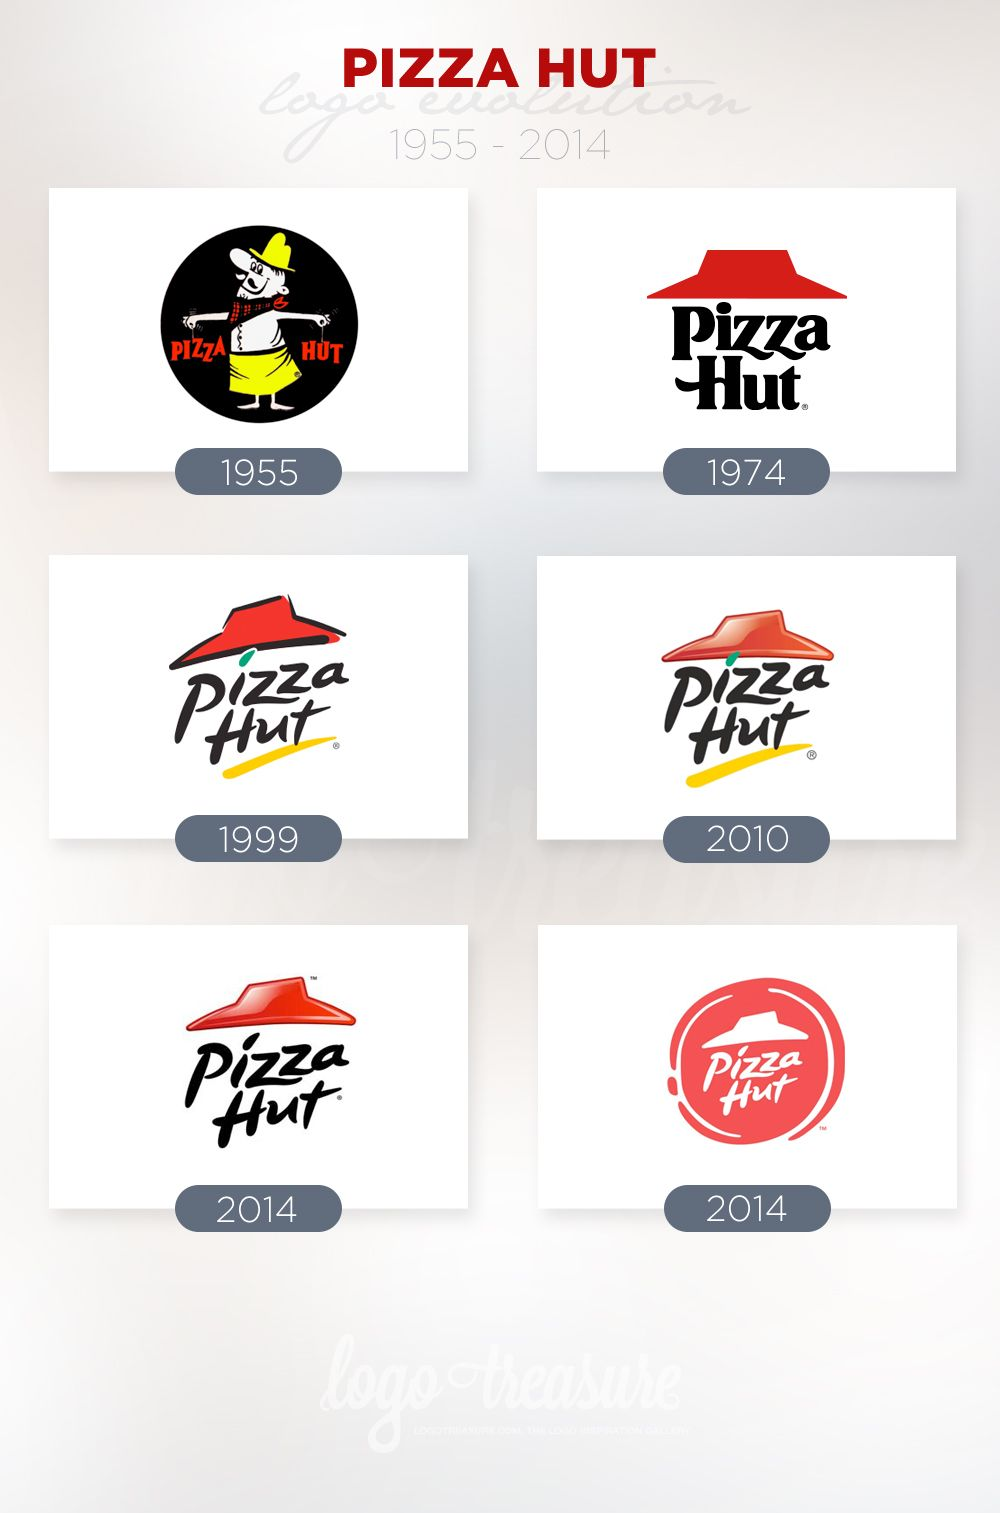 Pizza Hut Logo Evolution from 1955 to 2014 | Branding and Identity ...